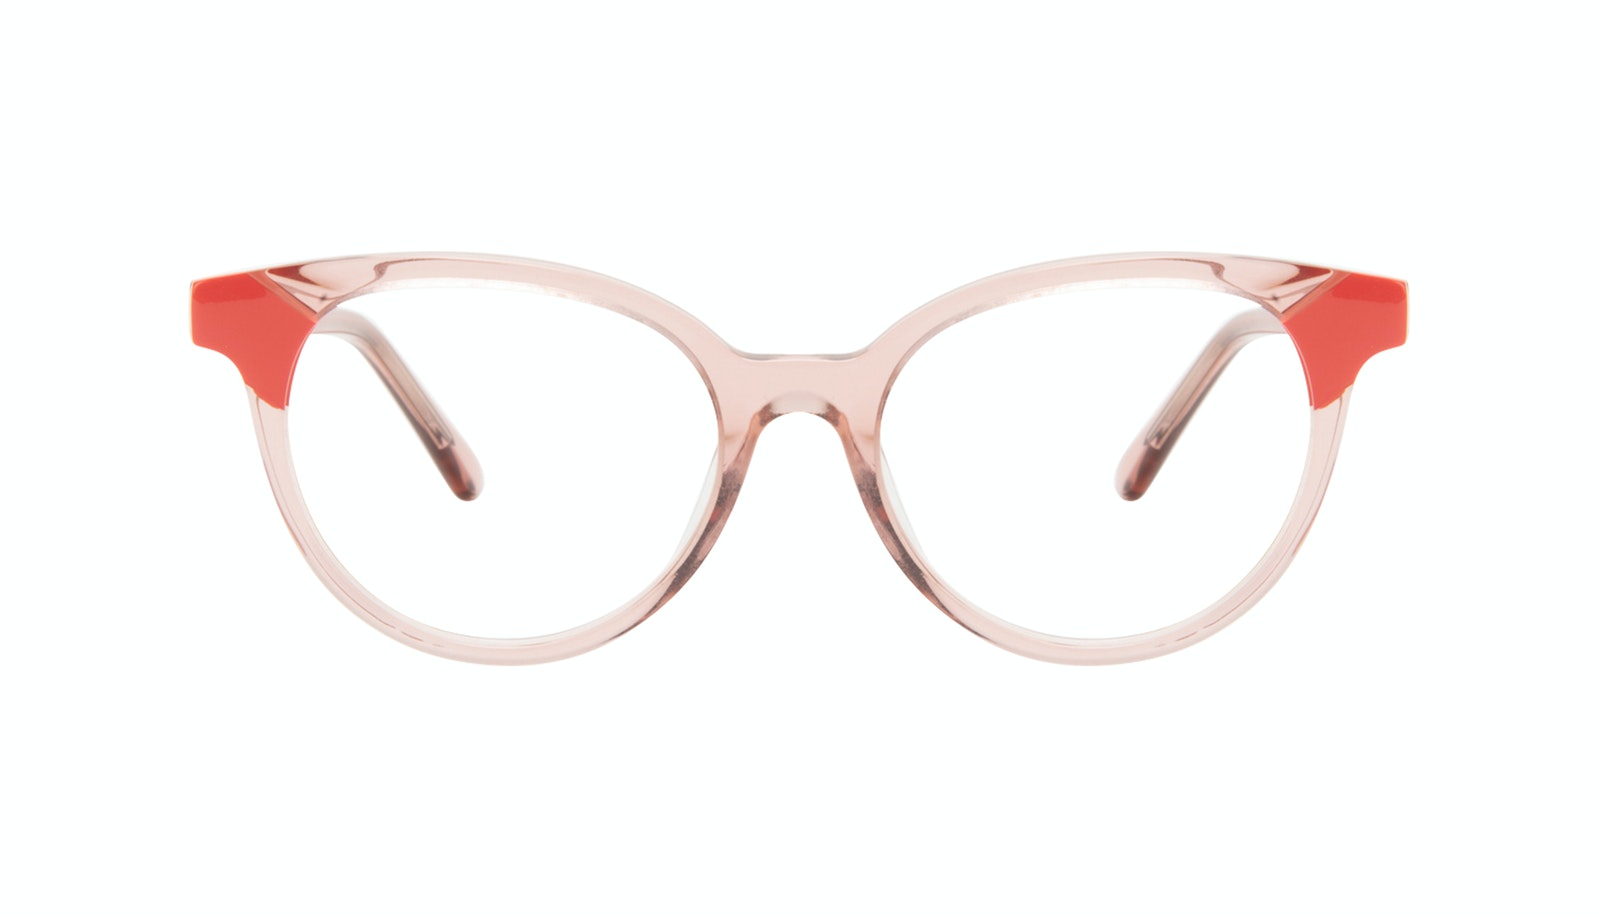 Affordable Fashion Glasses Round Eyeglasses Women Bright Pink Coral